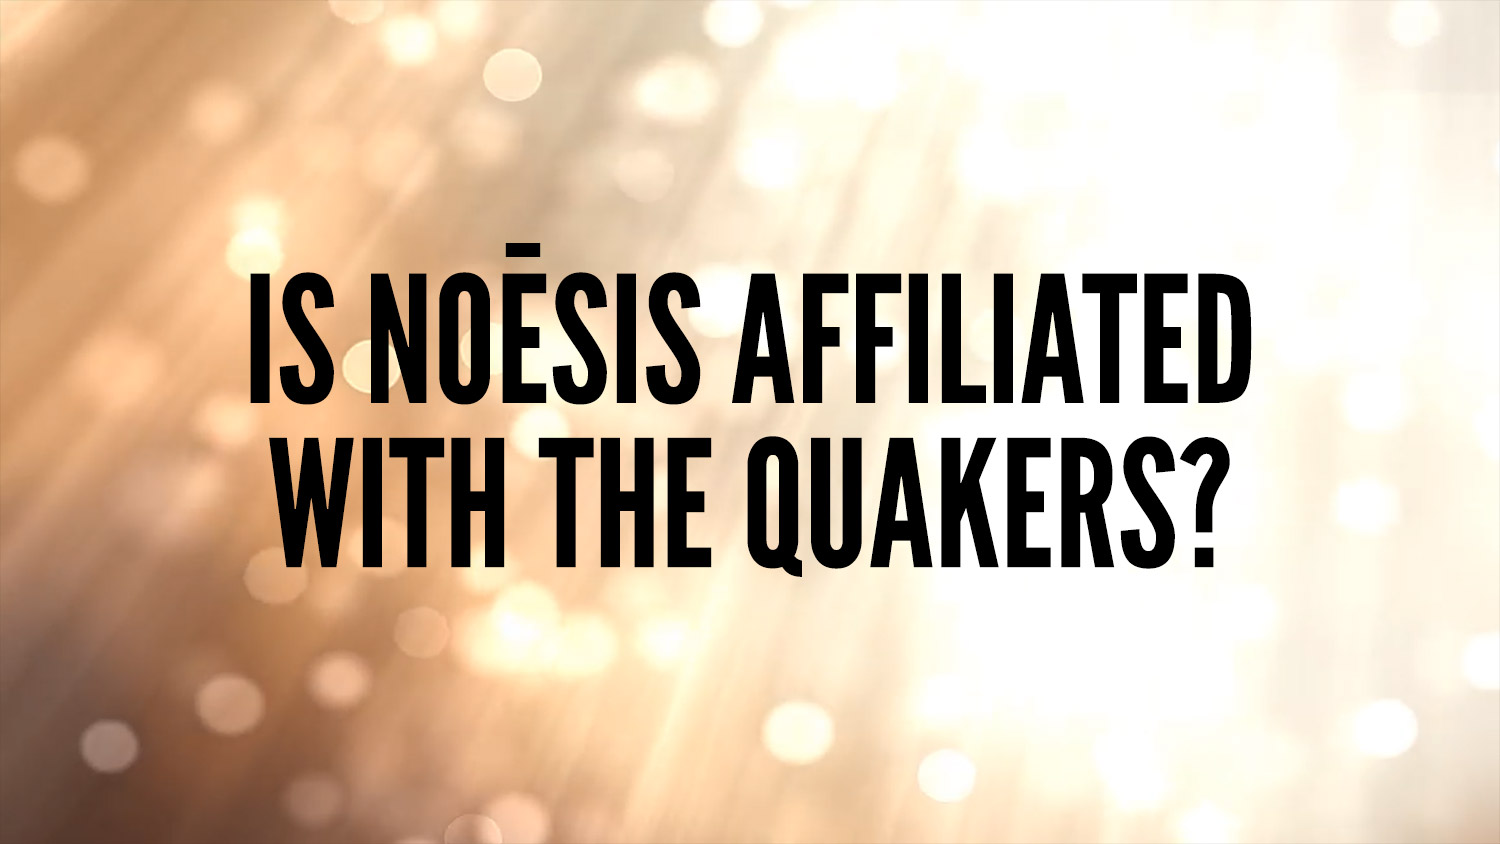 is noesis affiliated with the quakers